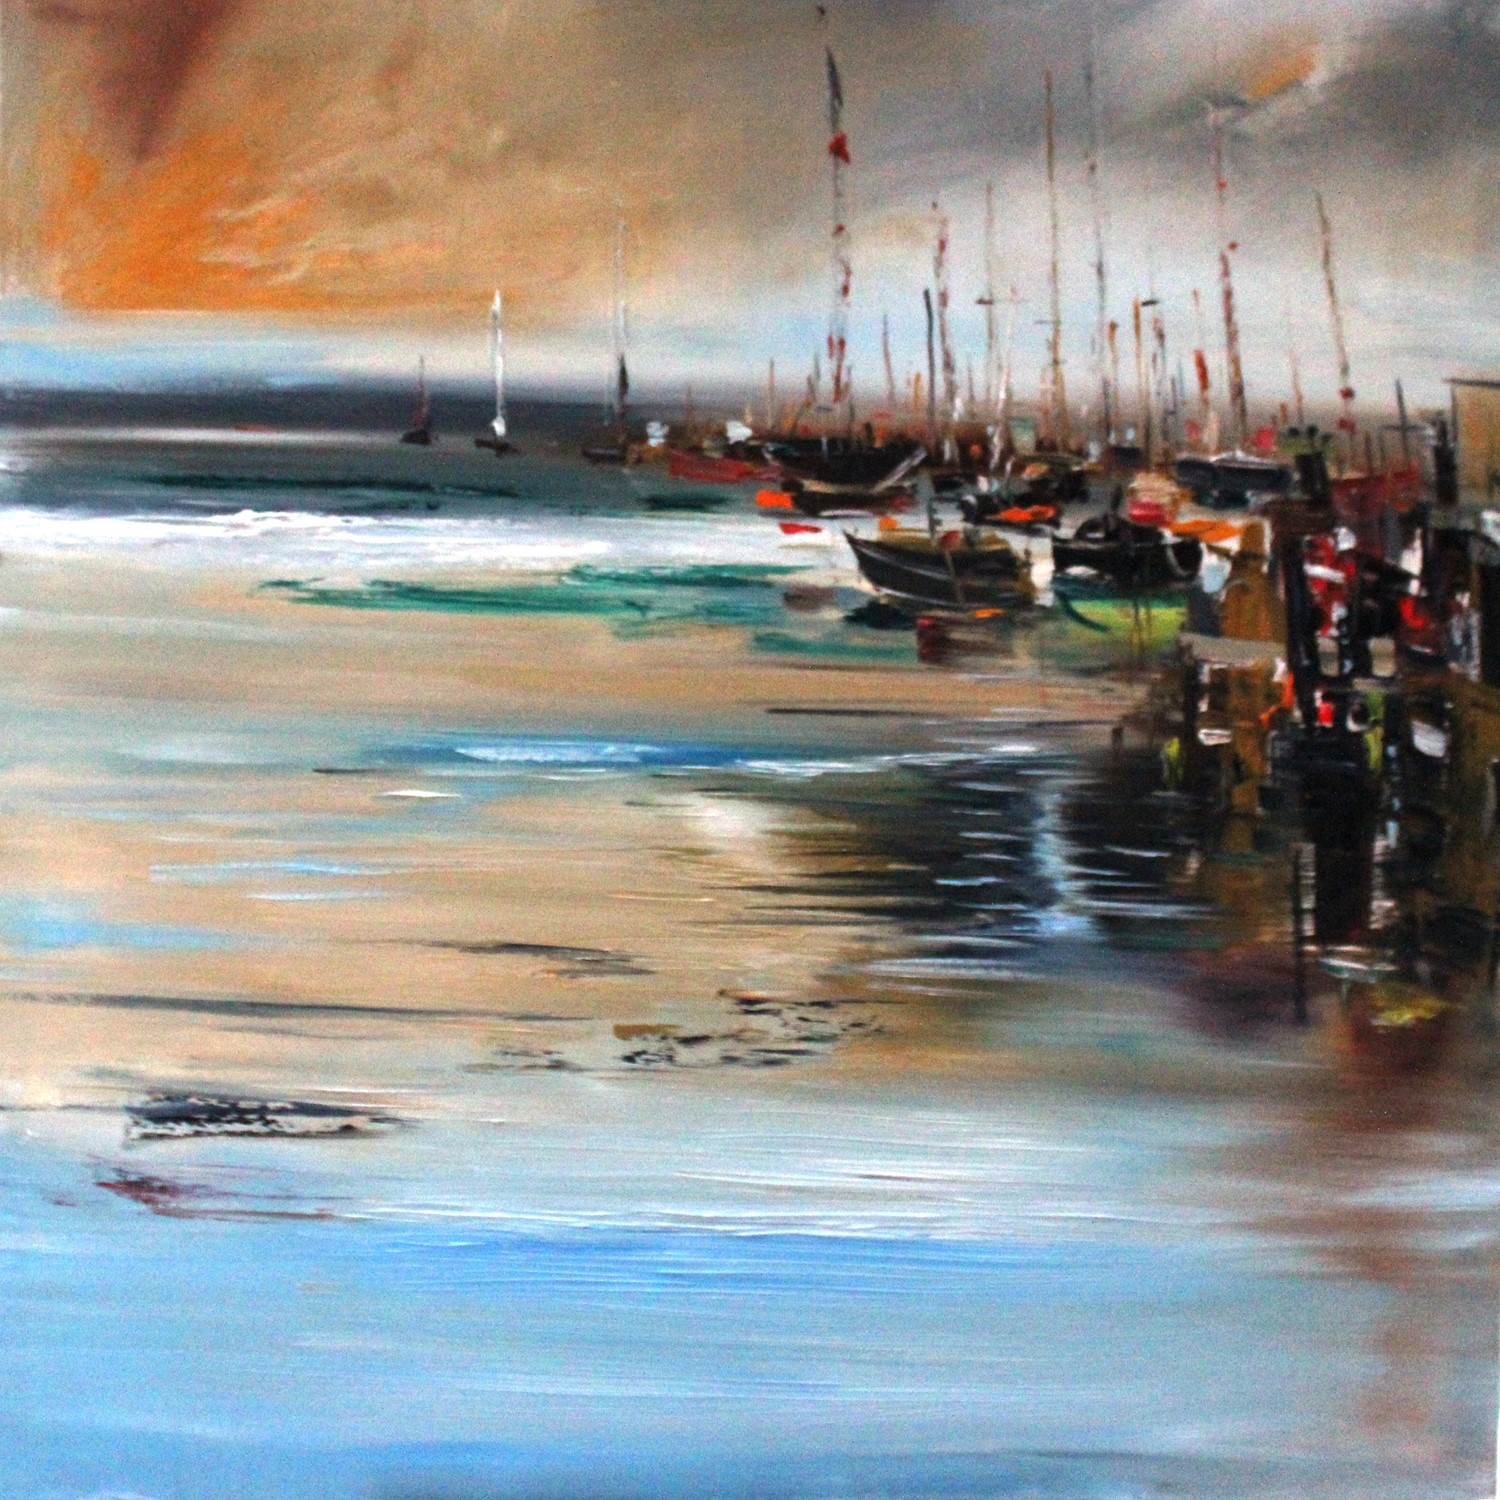 'Boats in The Bay' by artist Rosanne Barr